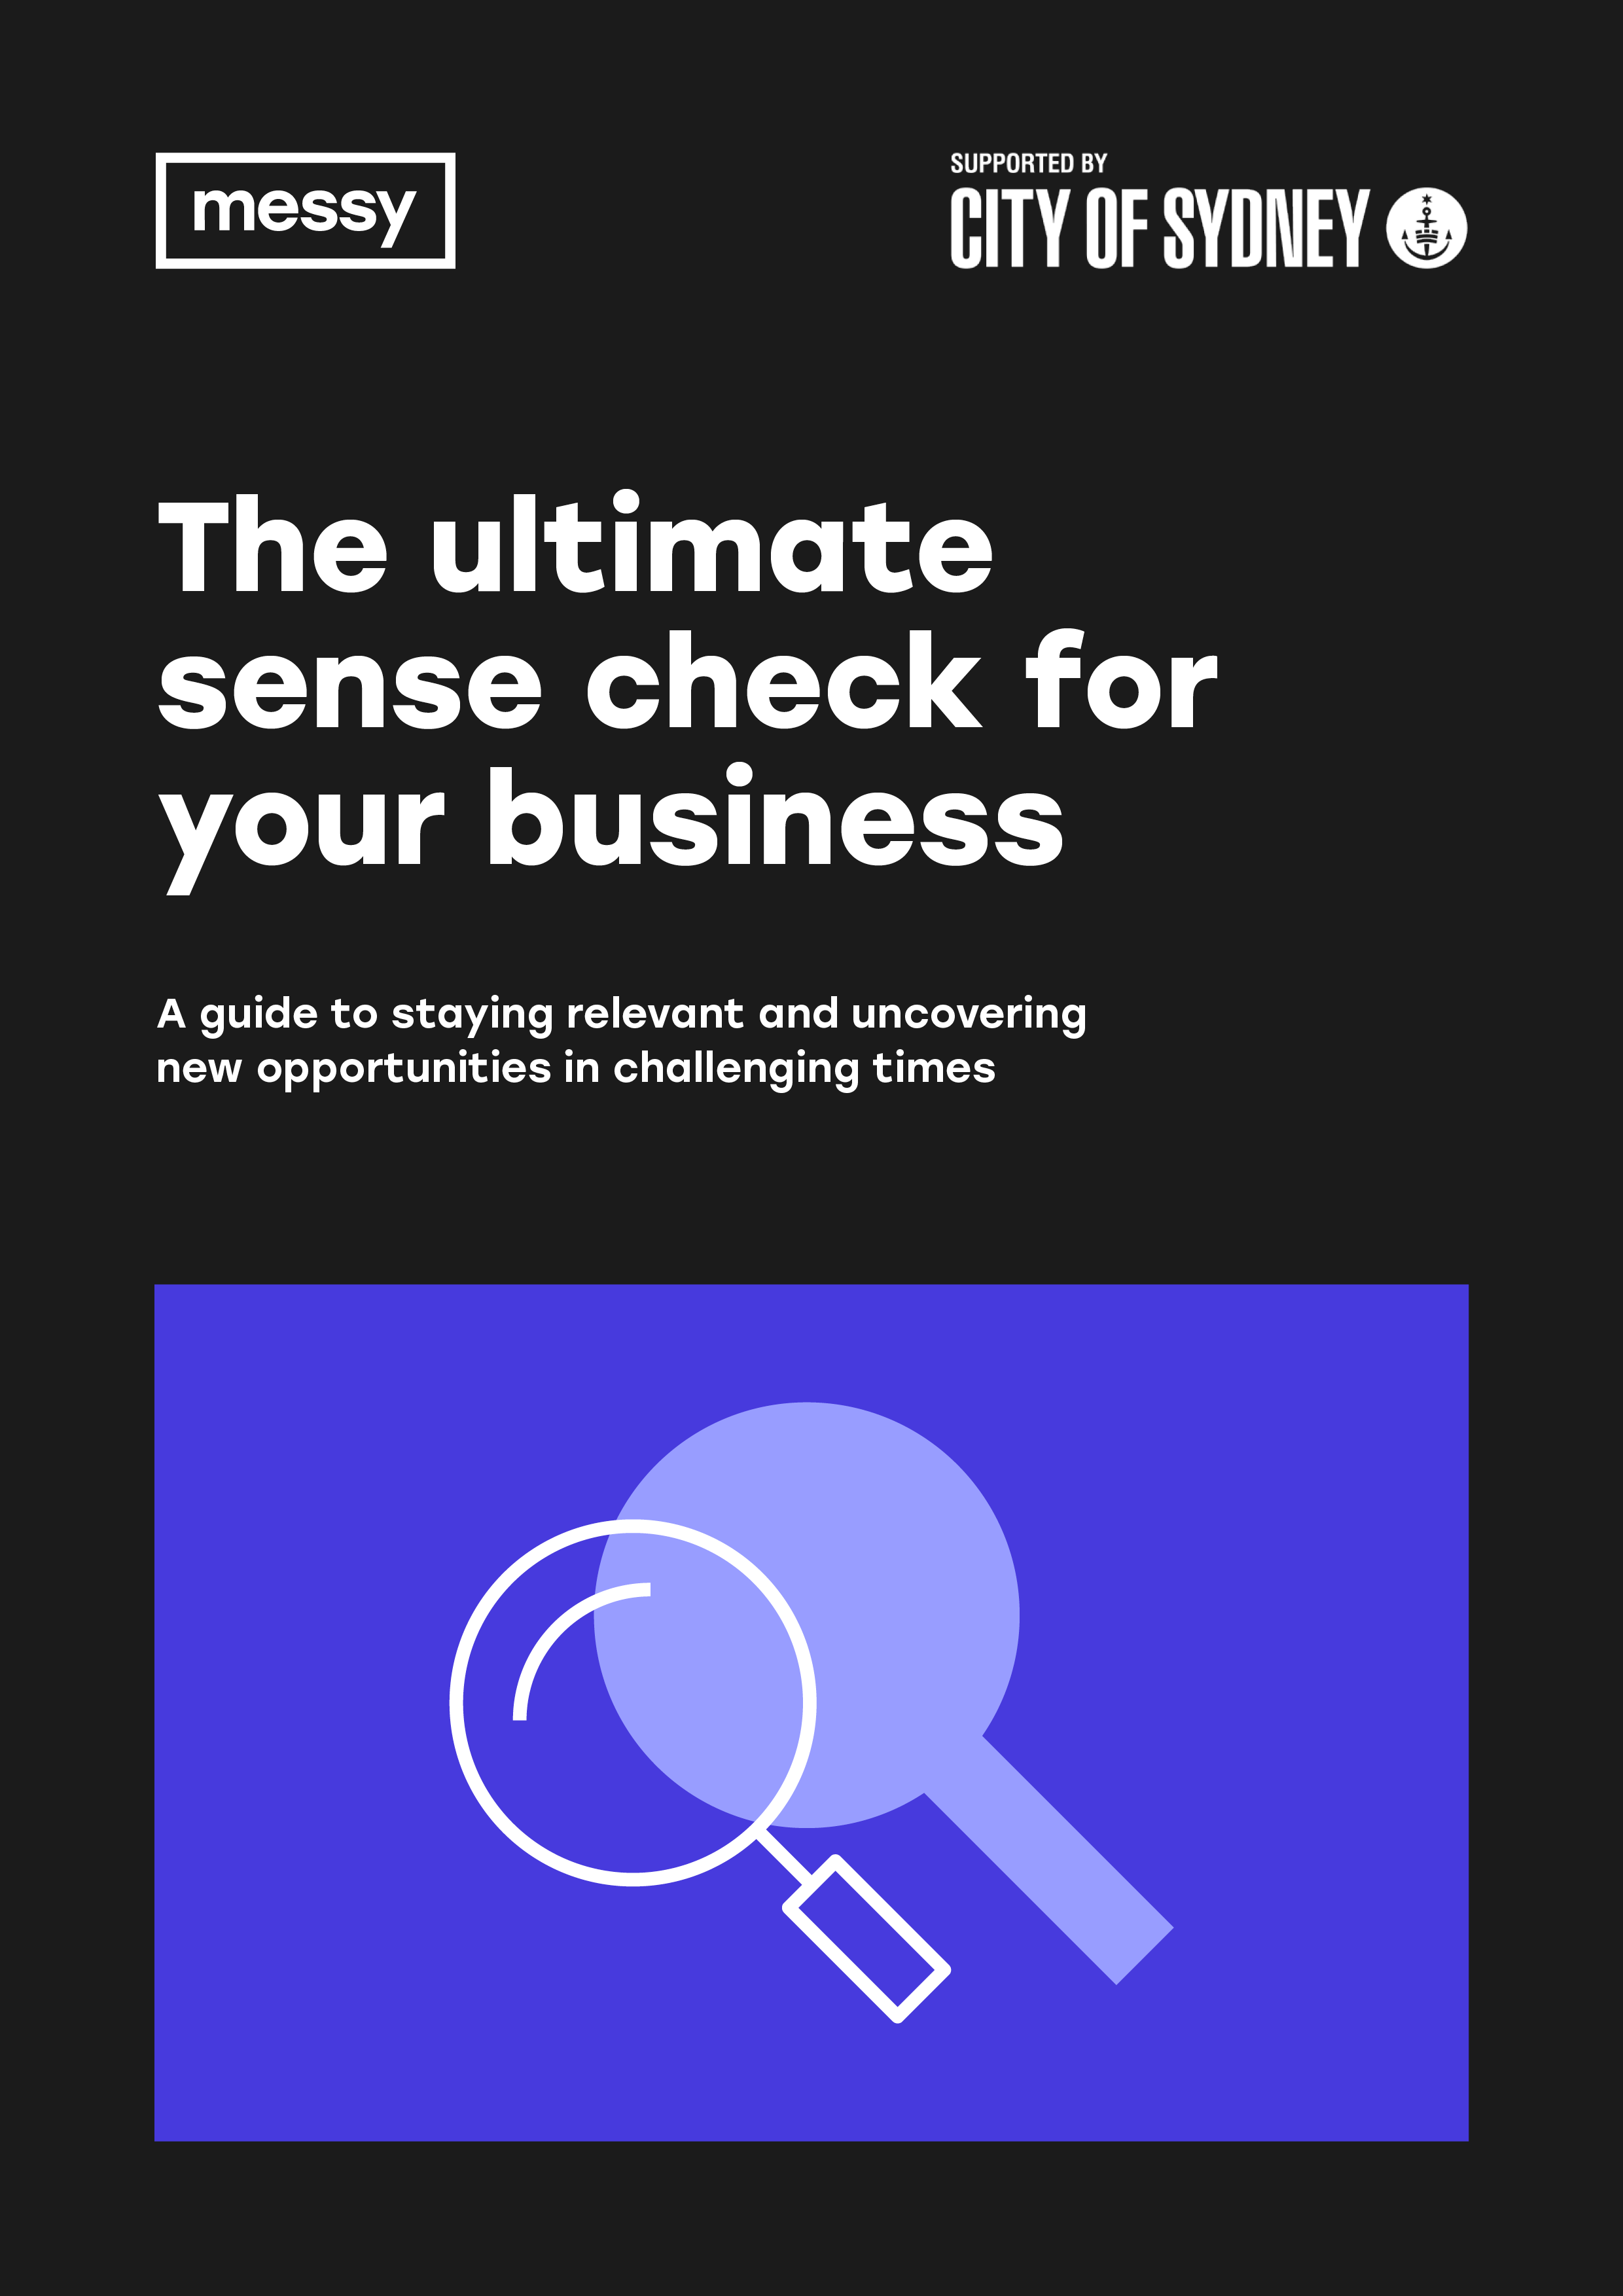 The Ultimate Sense Check for your Business guide cover